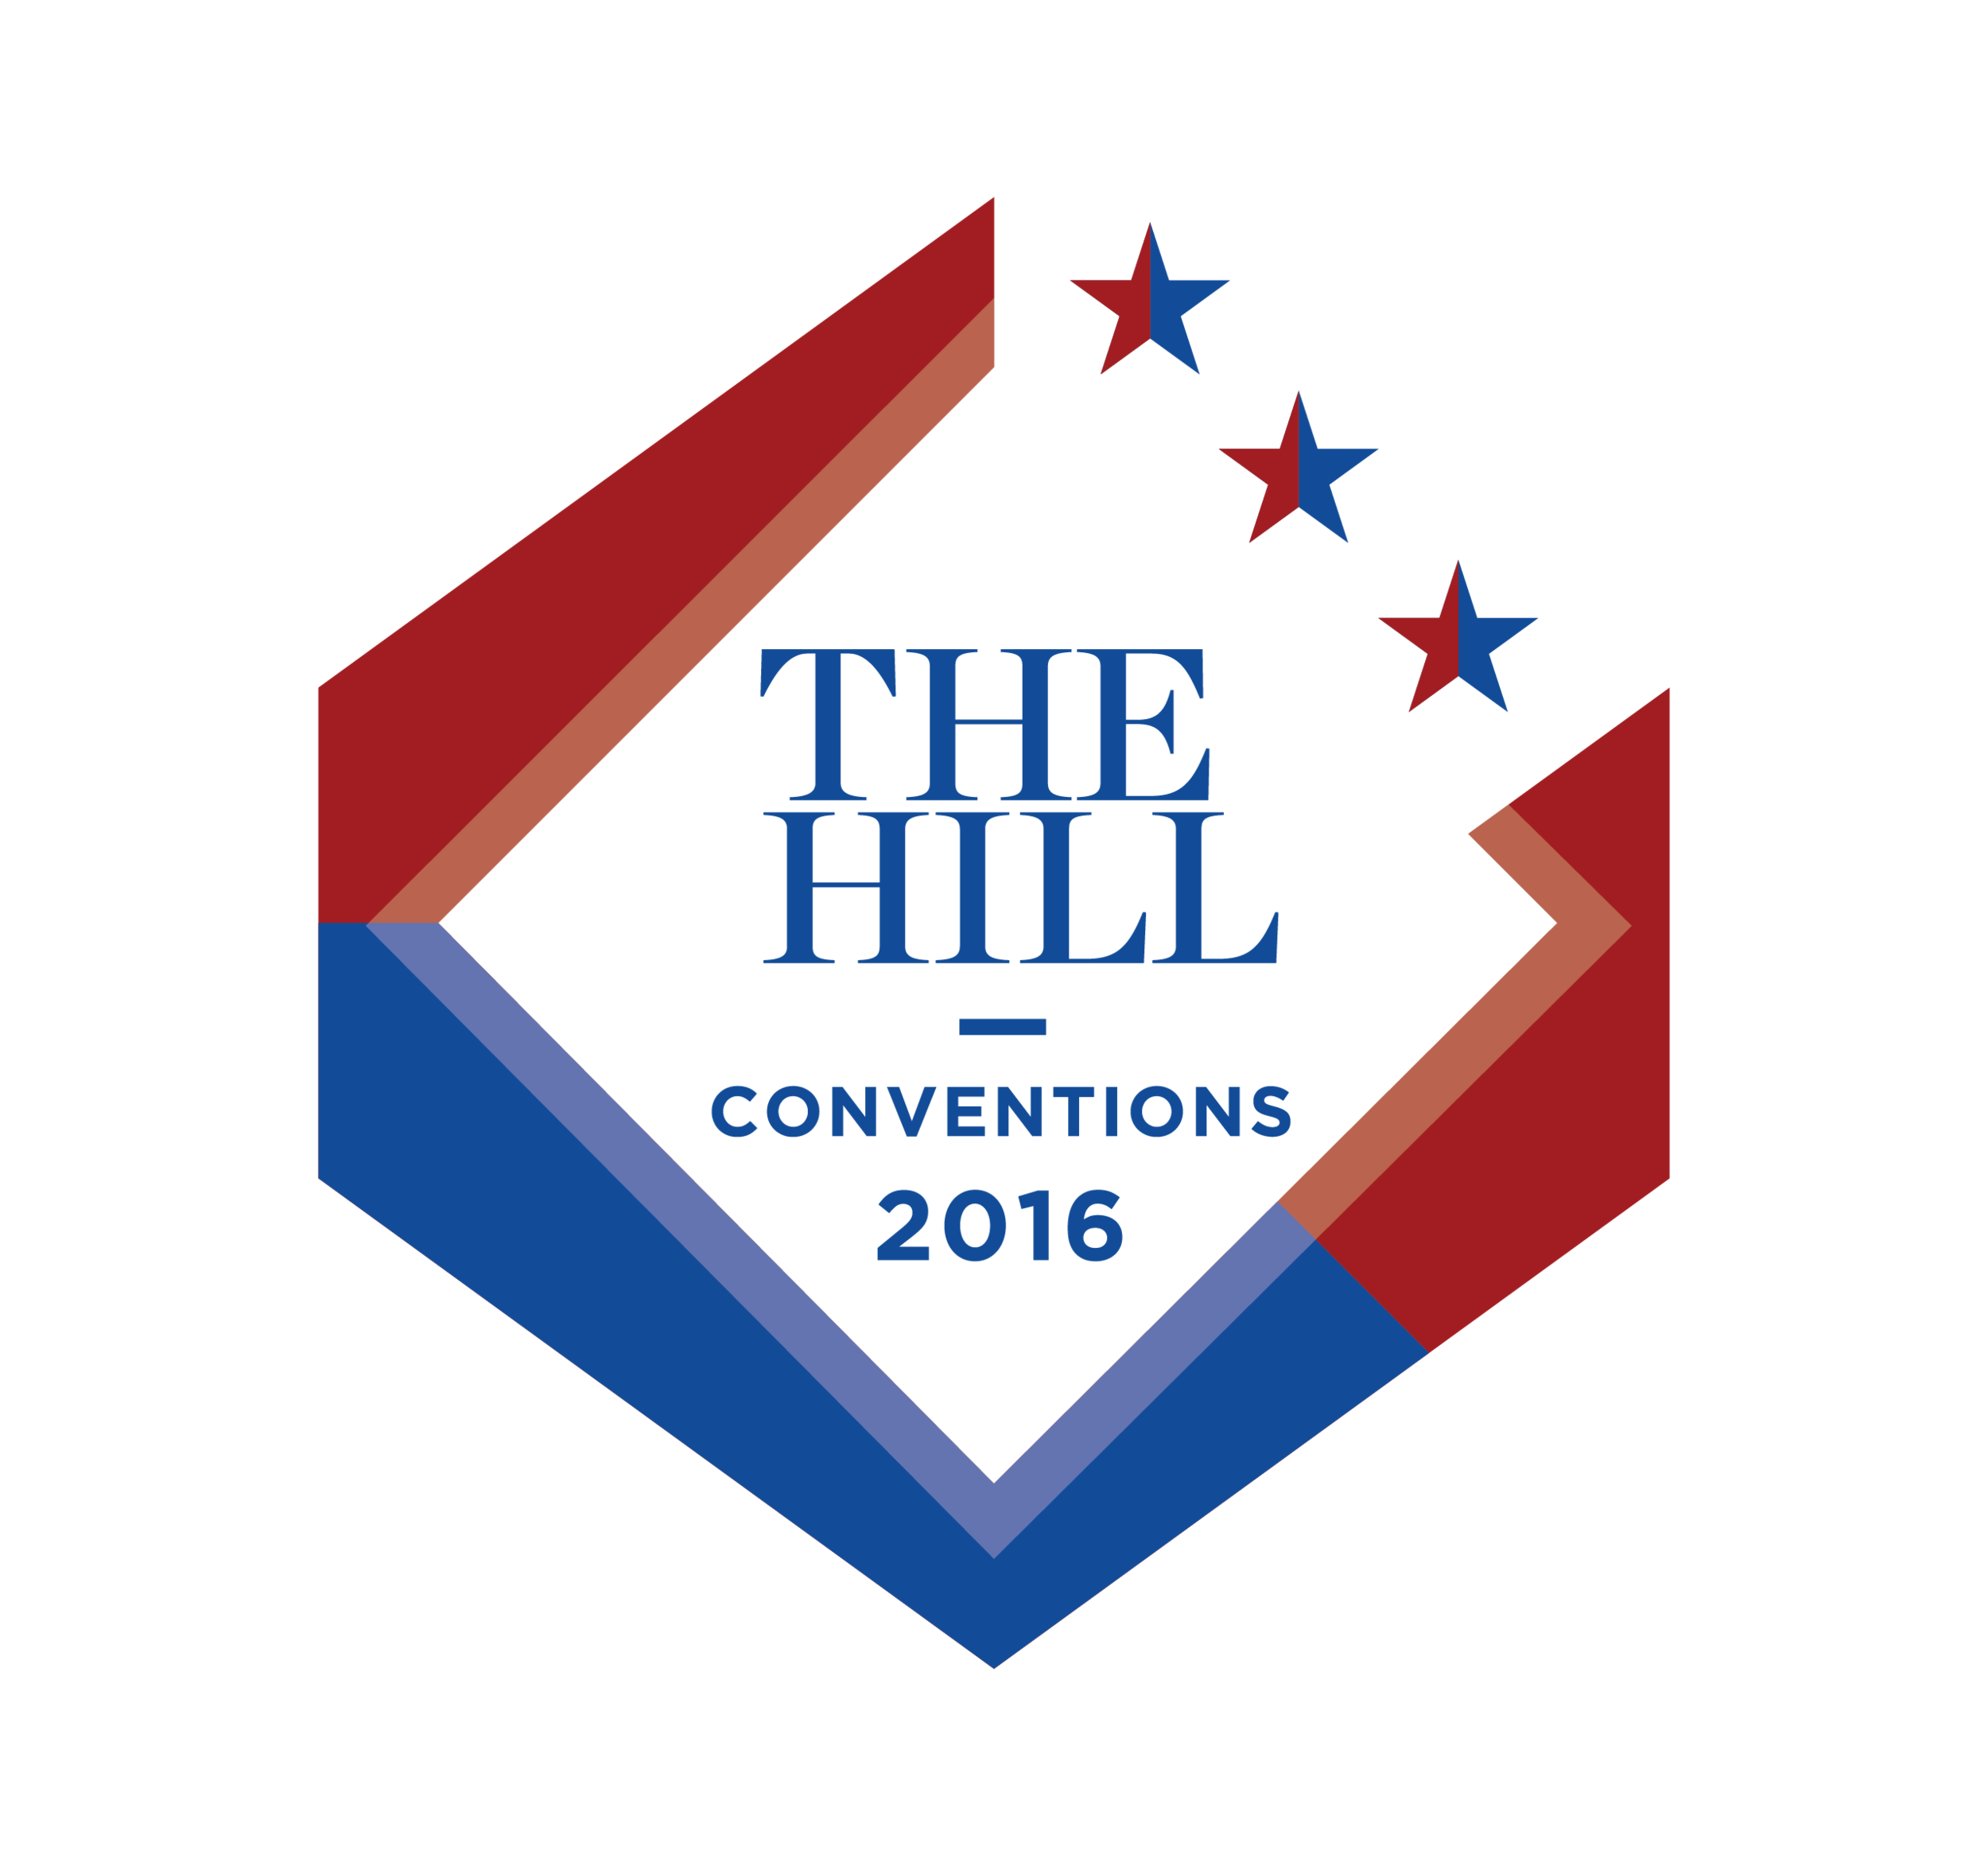 Conventions_2016_Logo-01.png